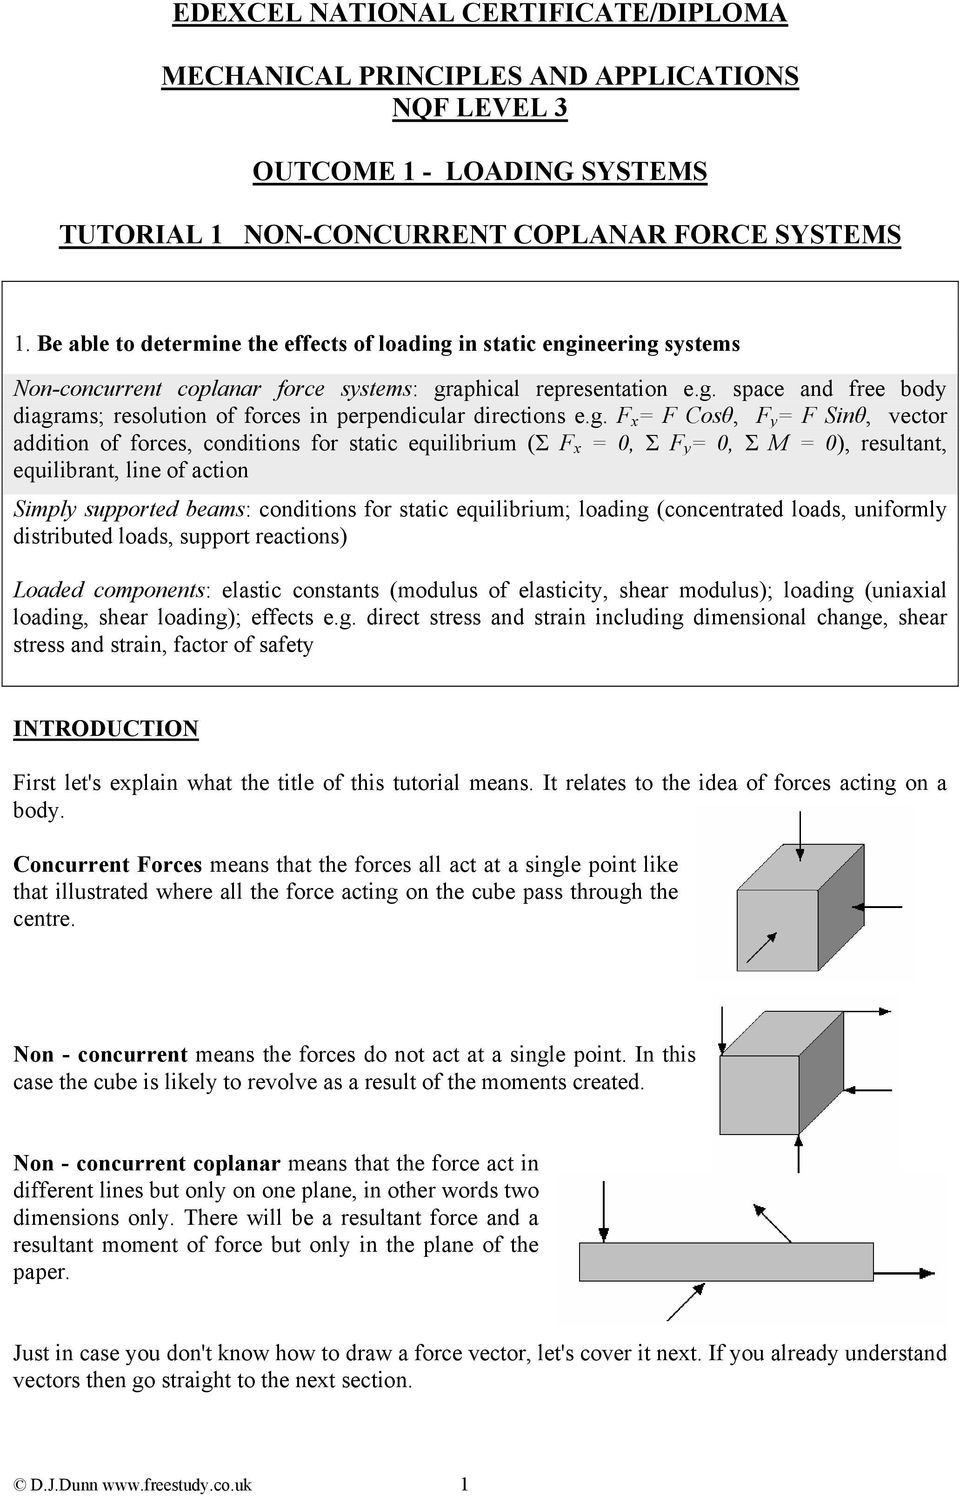 EDEXCEL NATIONAL CERTIFICATE/DIPLOMA MECHANICAL PRINCIPLES